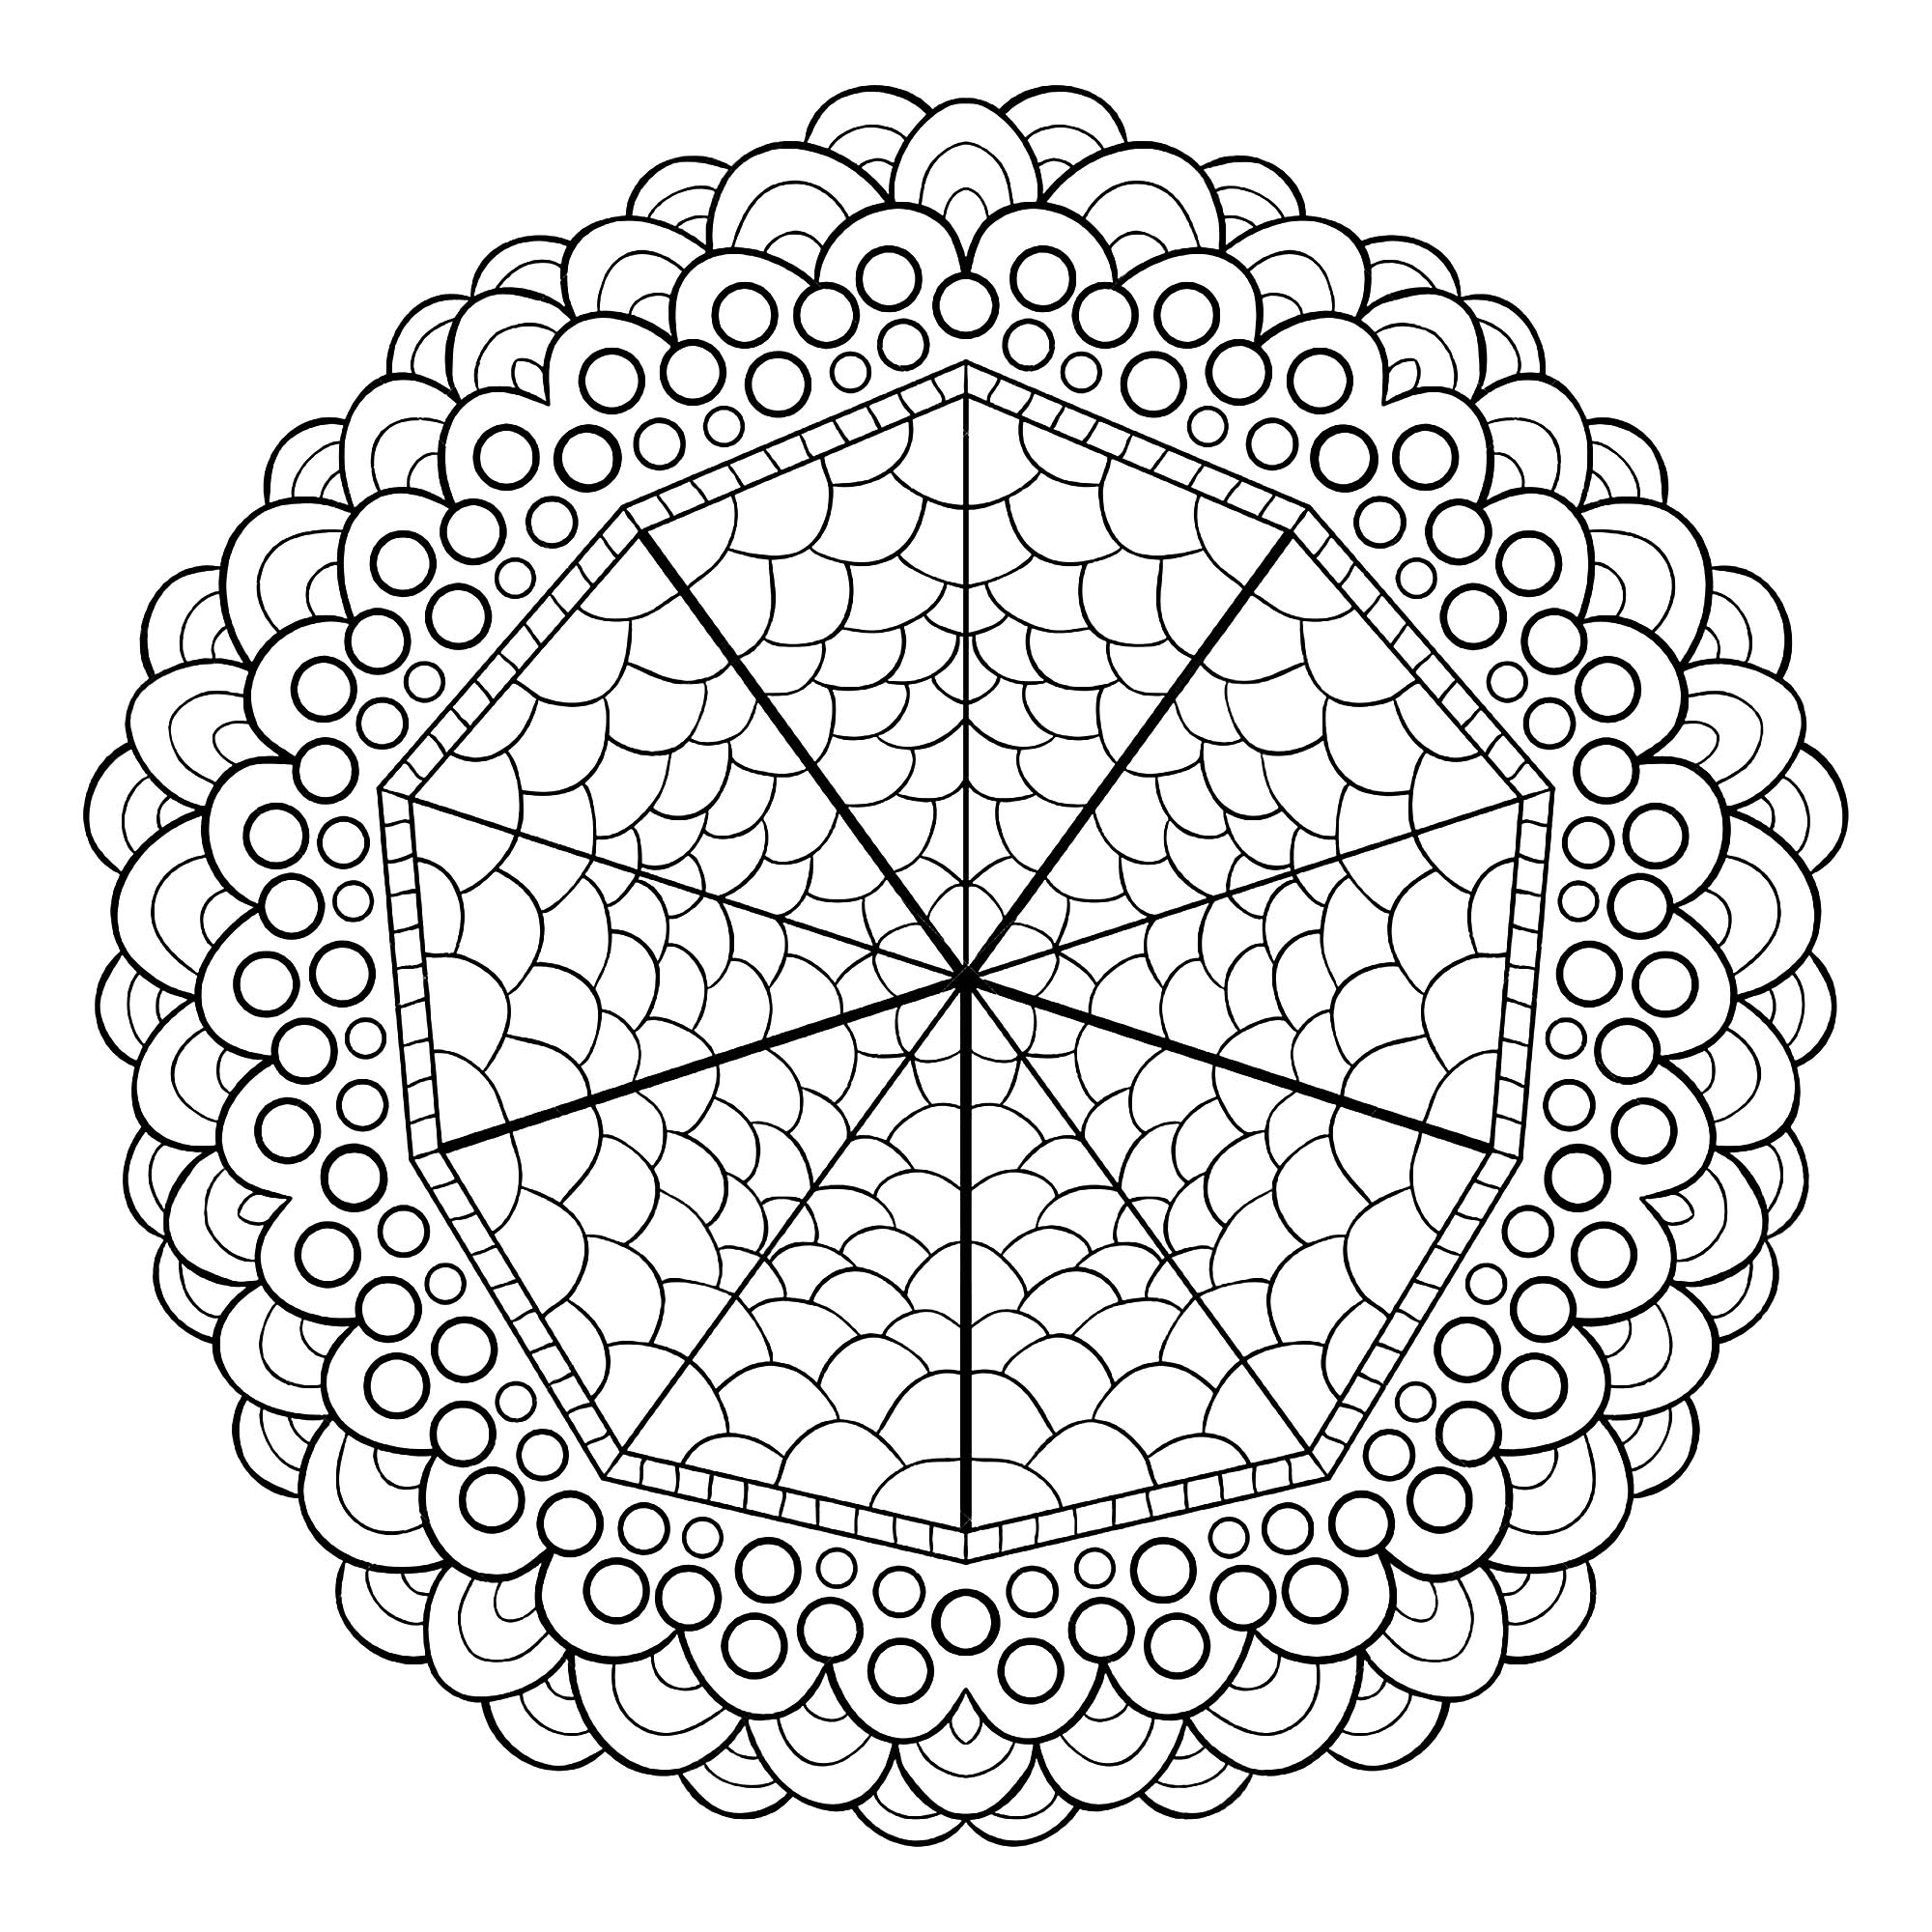 If you are looking for a Mandala not too complicated to color, but still with a relative difficulty level, this one is perfect for you. Do whatever it takes to get rid of any distractions that may interfere with your coloring.